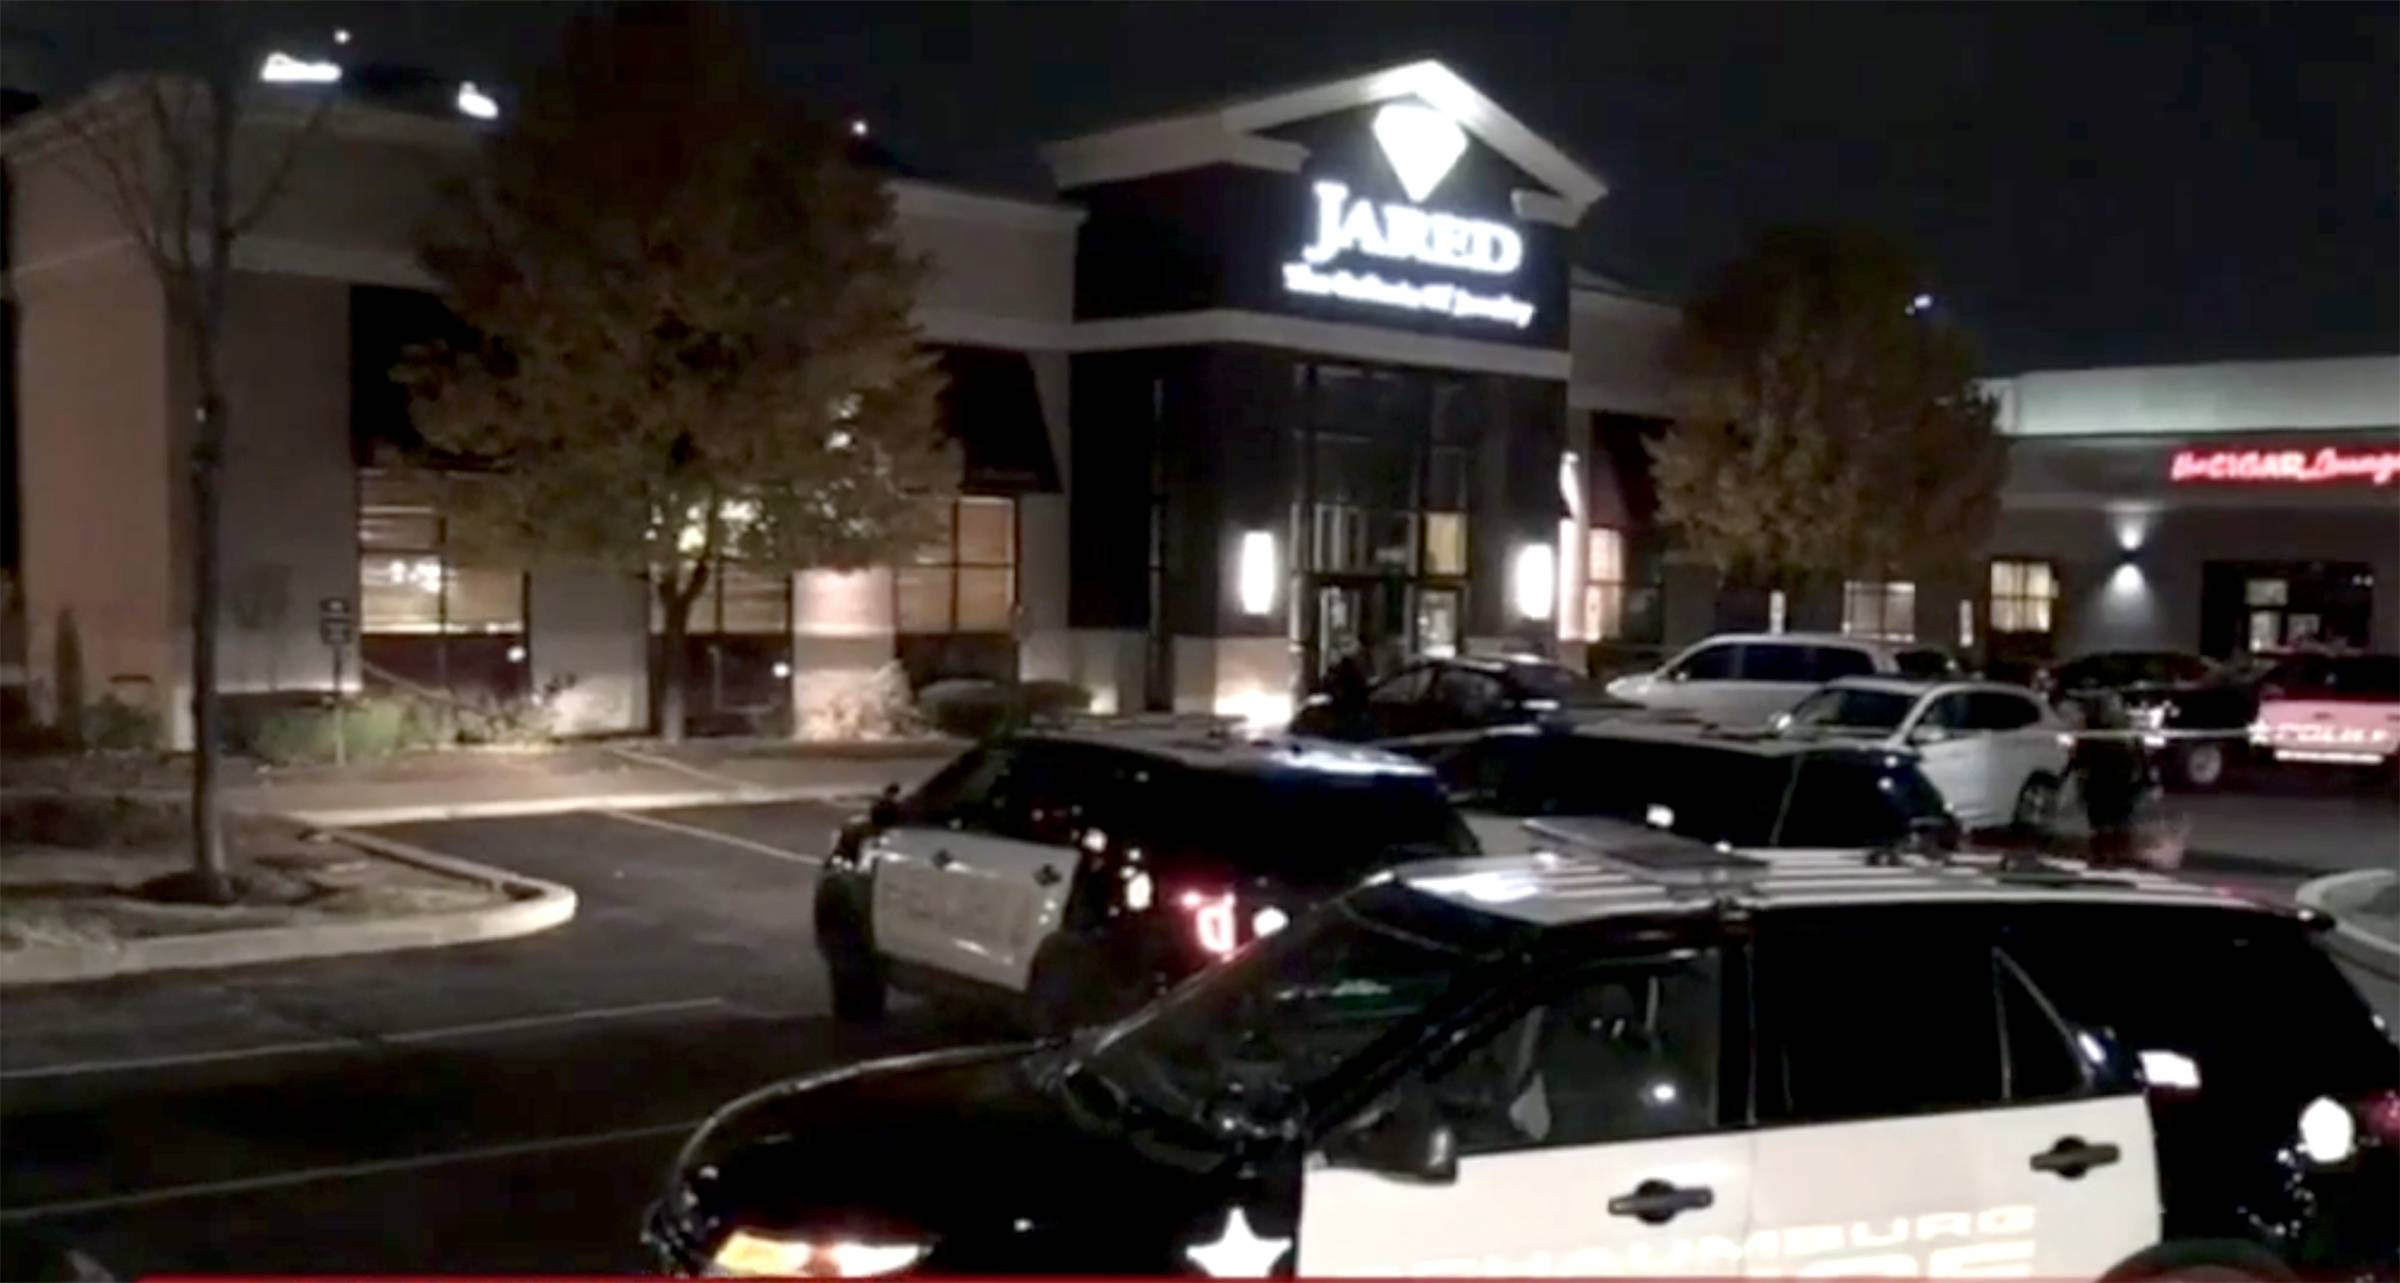 Dawn Patrol Jared jewelry store Subway shop robbed in Schaumburg